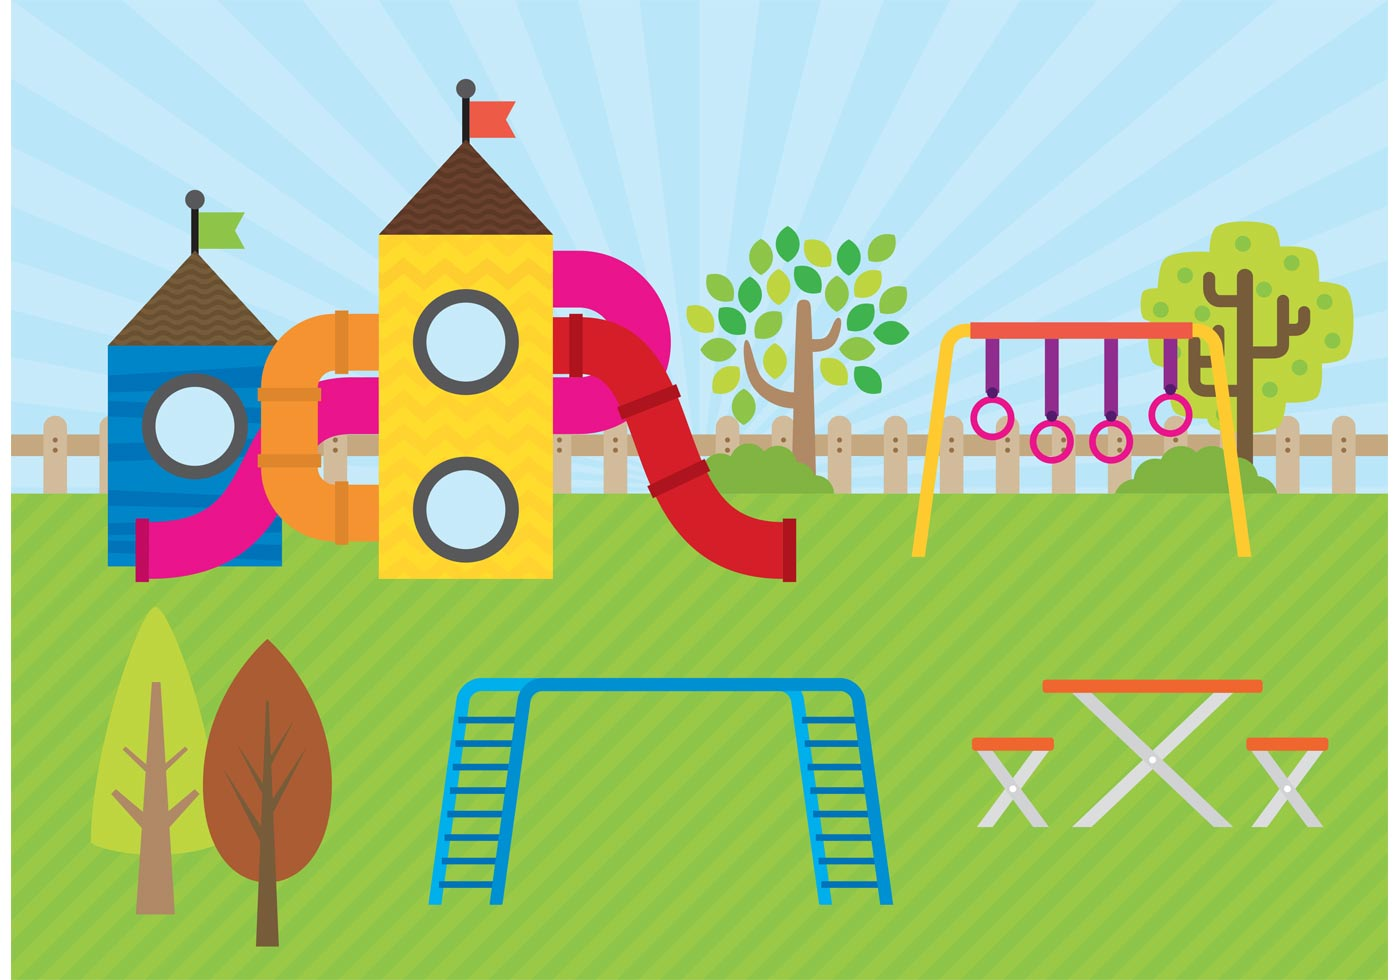 Playground Vector - Download Free Vectors, Clipart ...